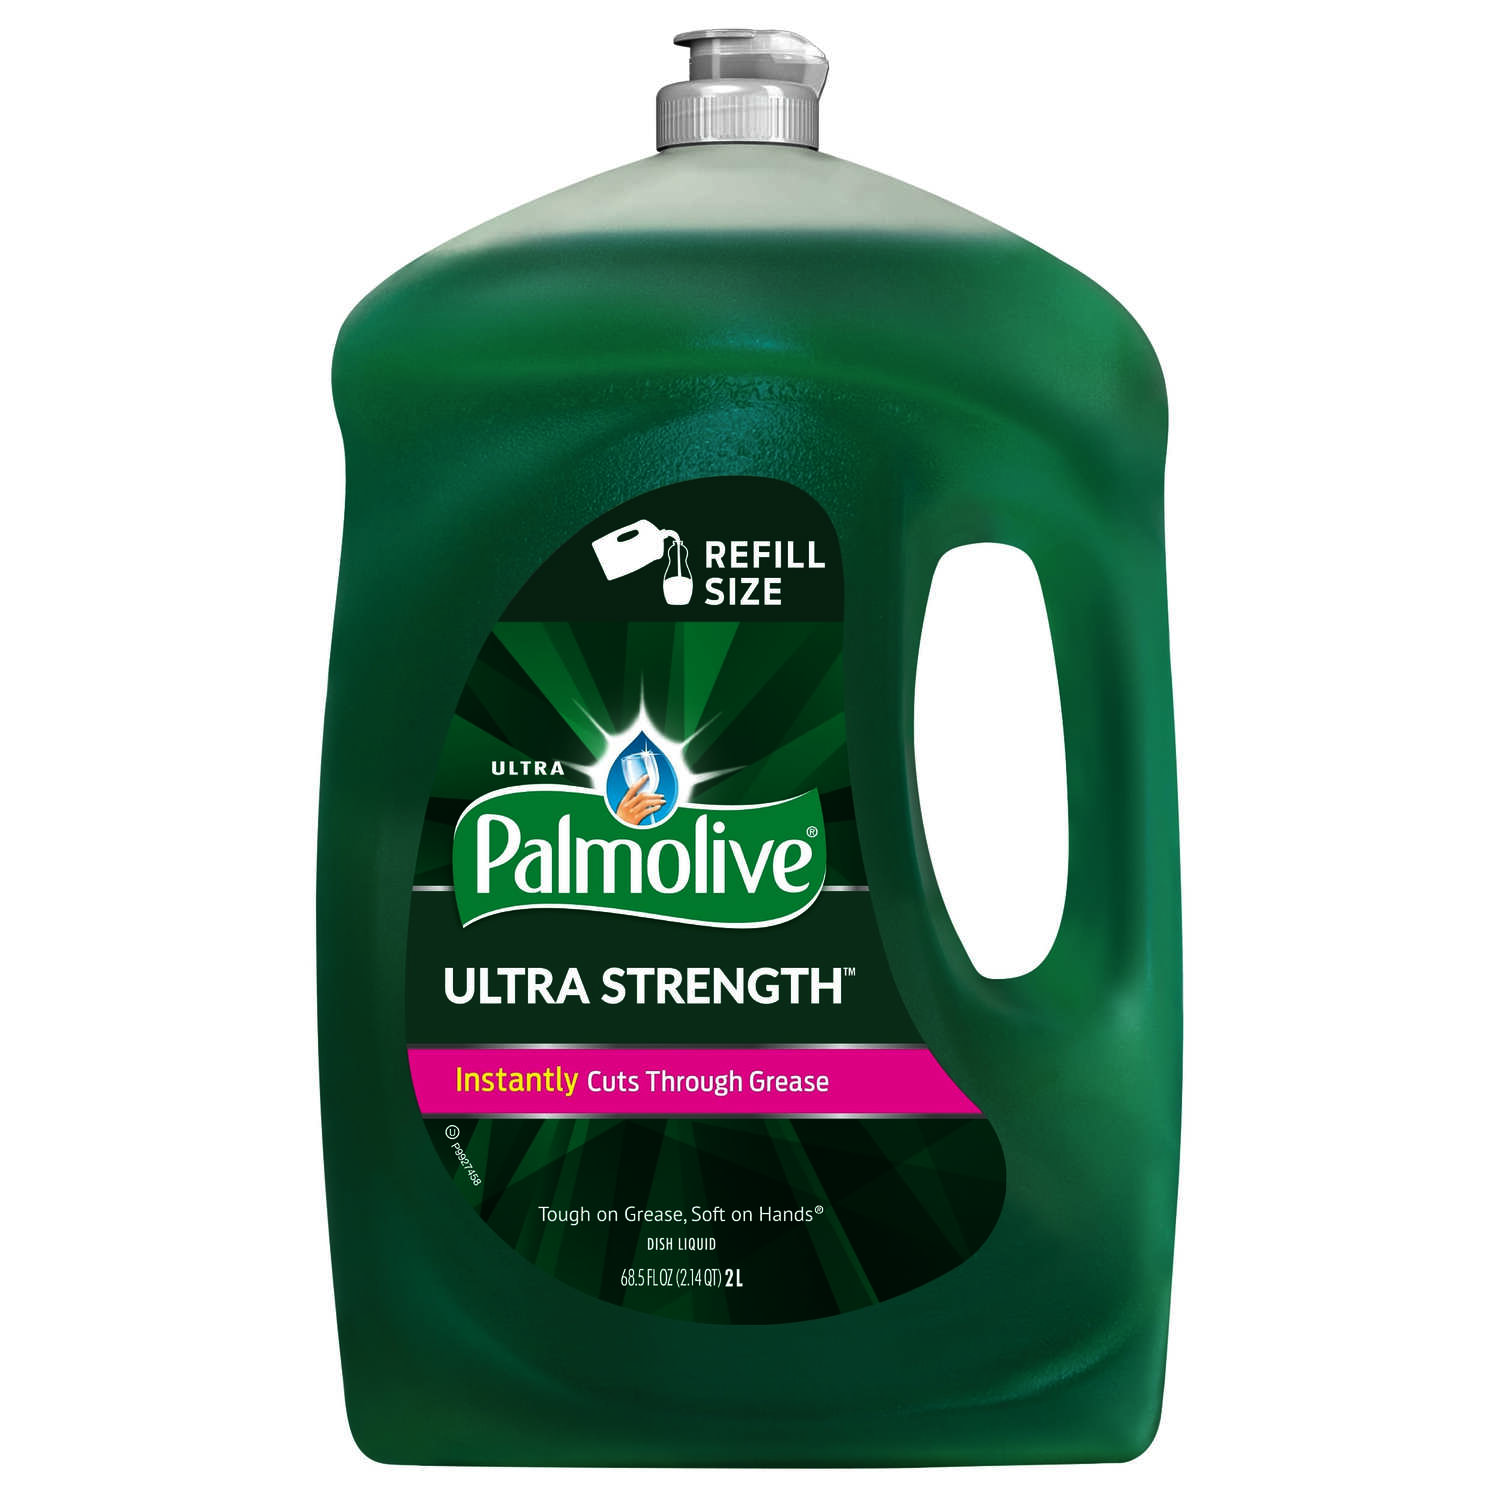 Palmolive  Ultra Strength  Original Scent Liquid  Dish Soap  68.5 oz. 1 pk